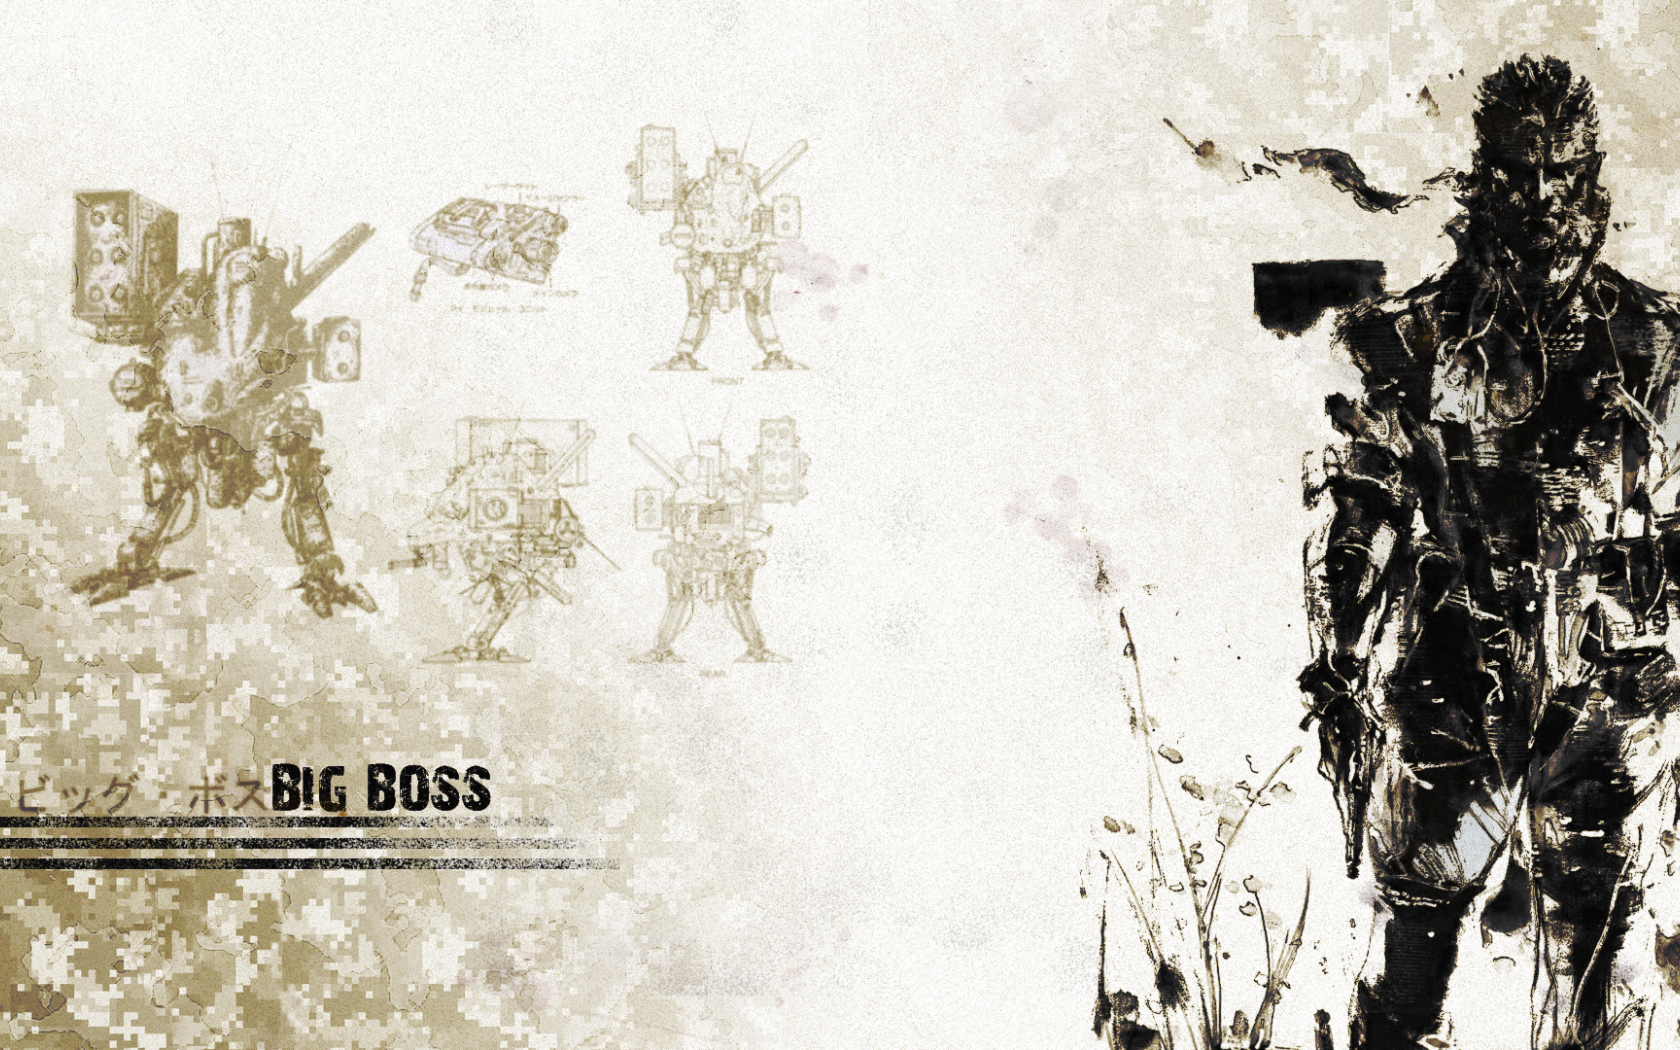 Free Download Big Boss Mgs Wallpaper 1920x1080 By Harmpie